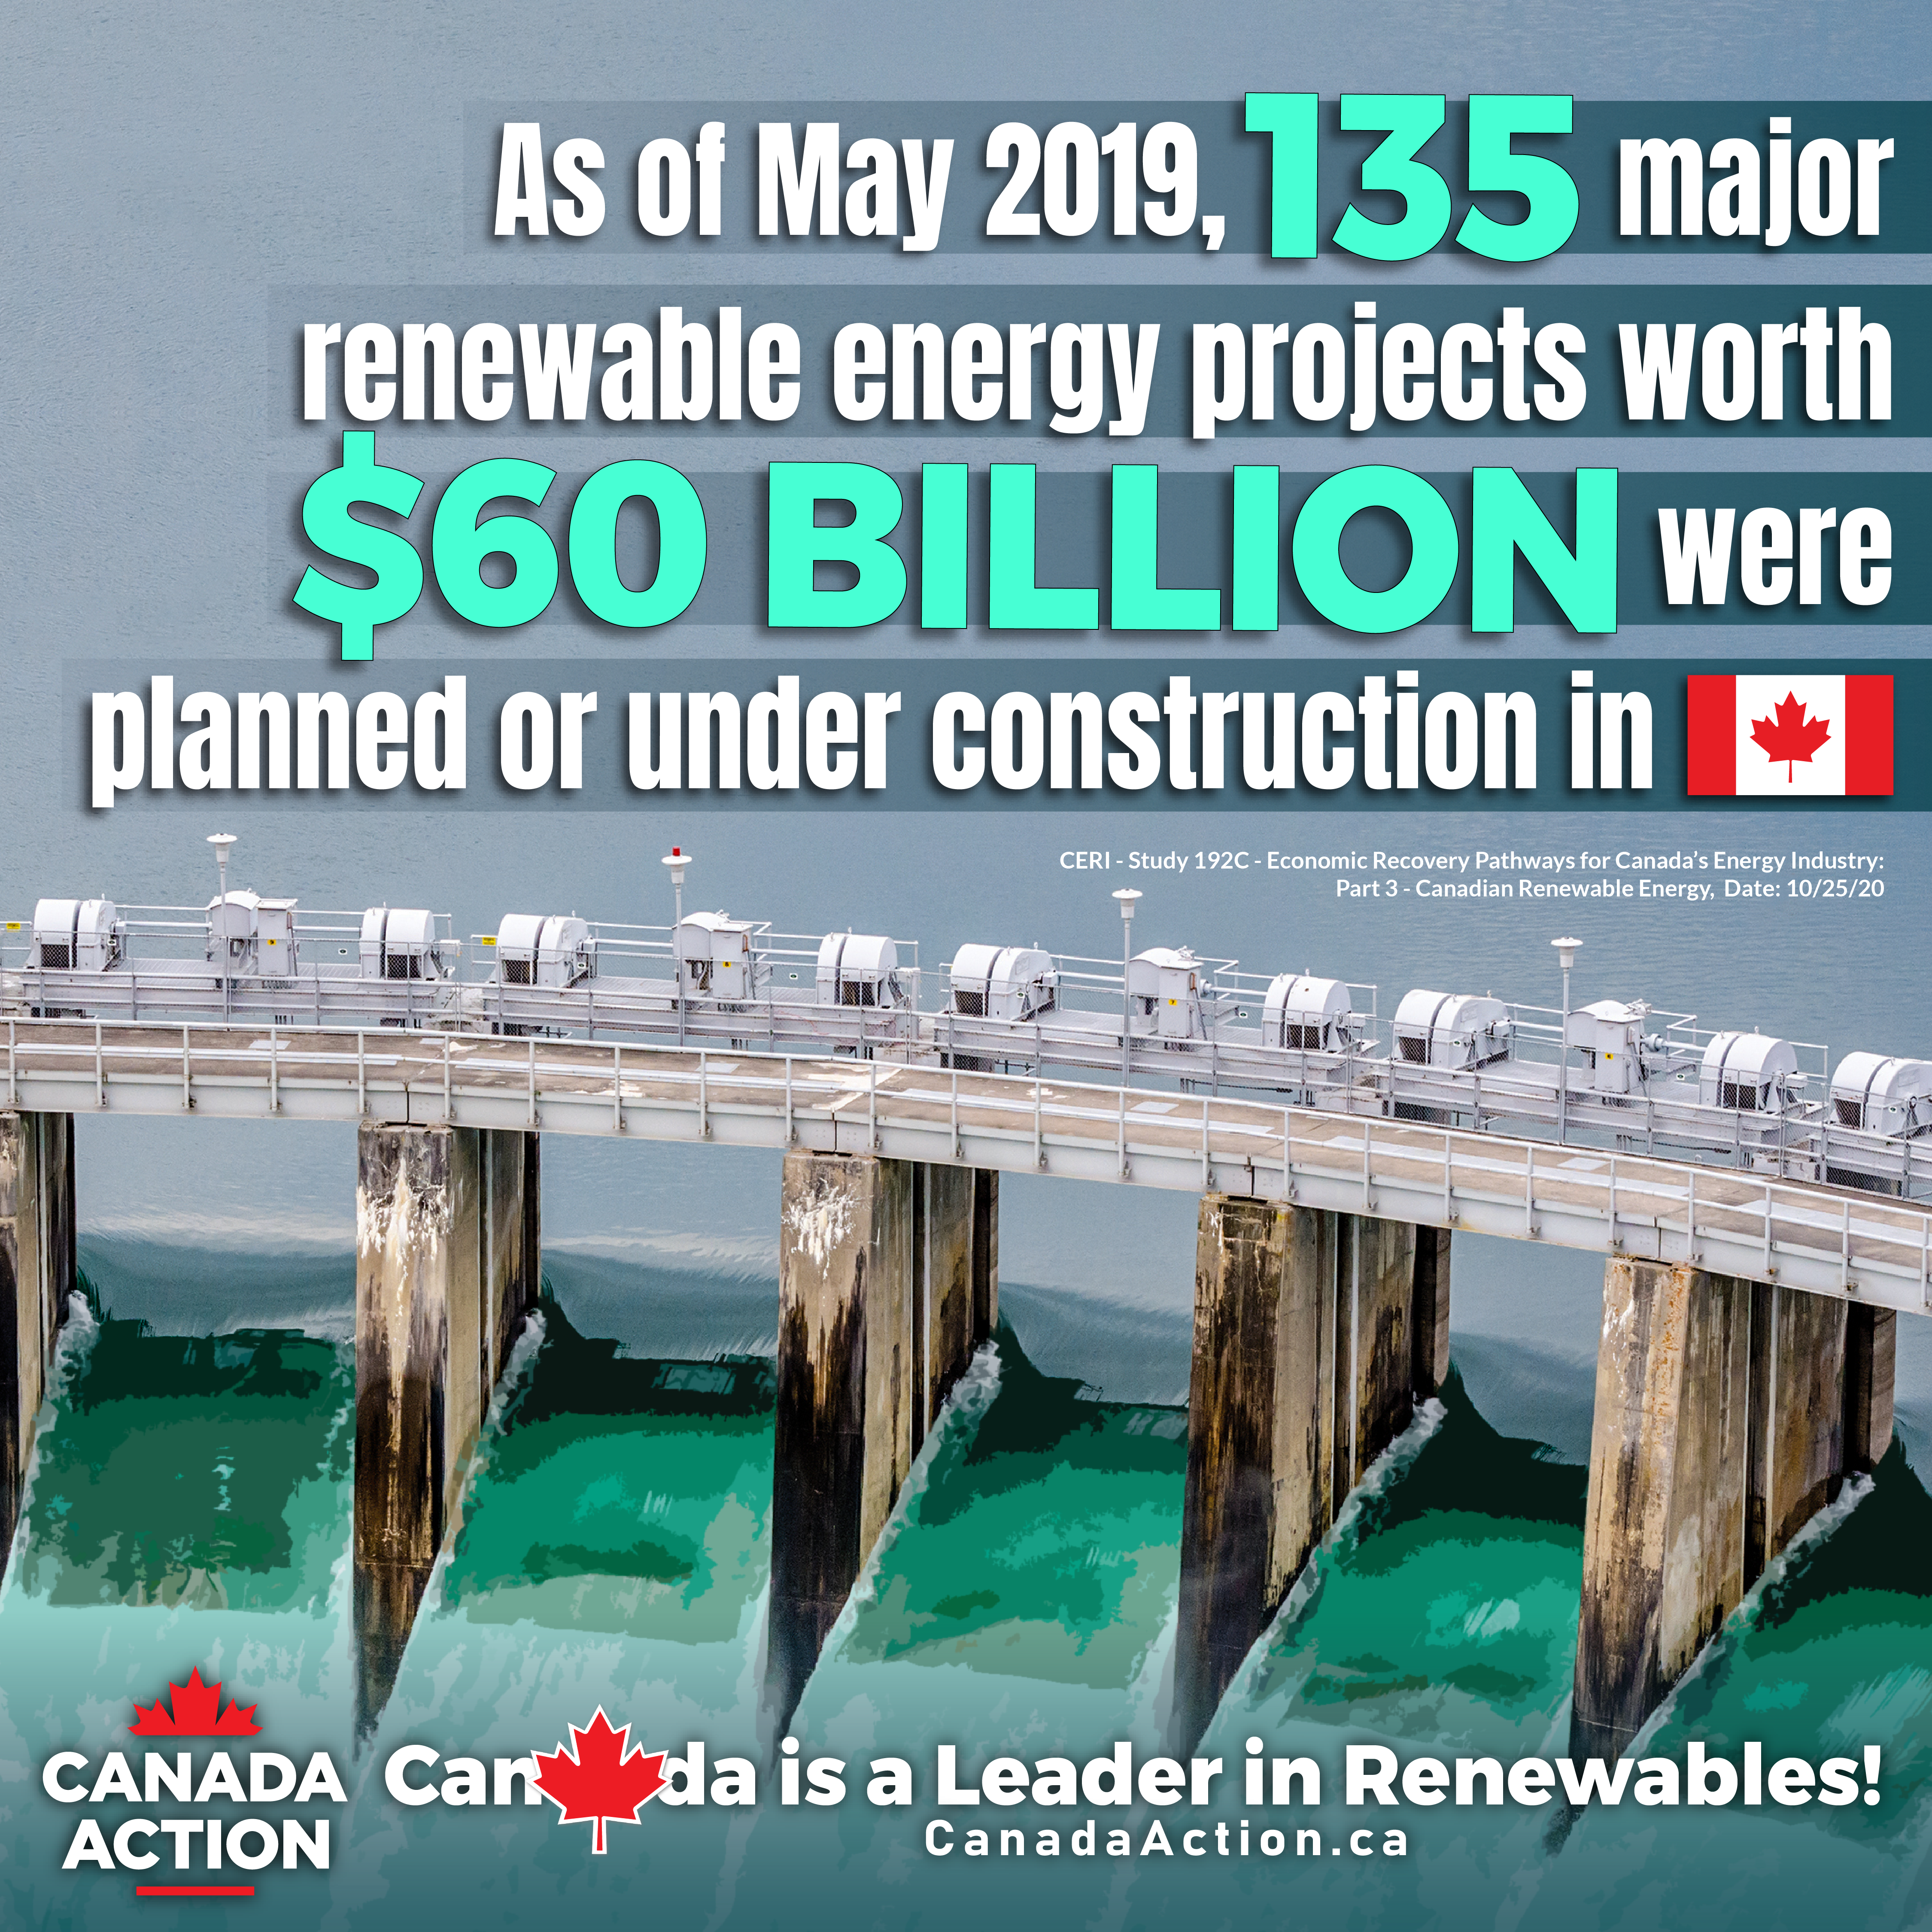 Canadian Renewable Energy Projects Under Construction